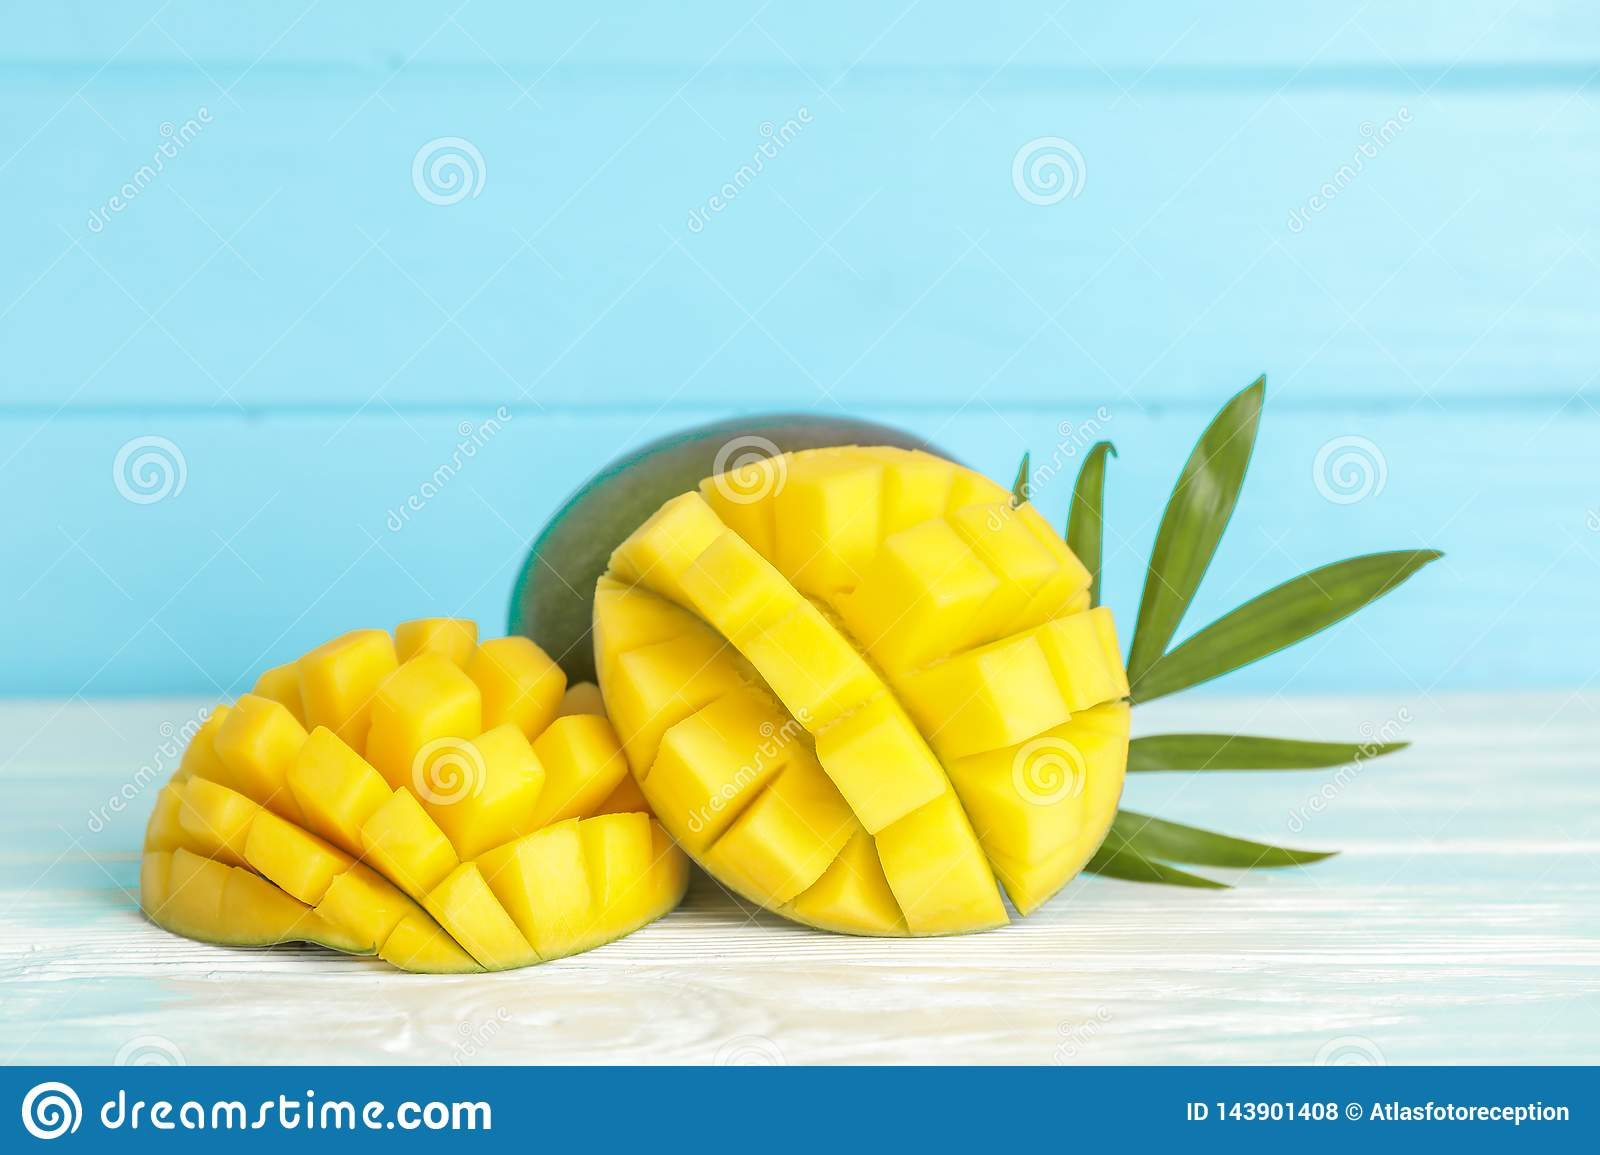 Cut ripe mangoes and palm leaf on white table against color background